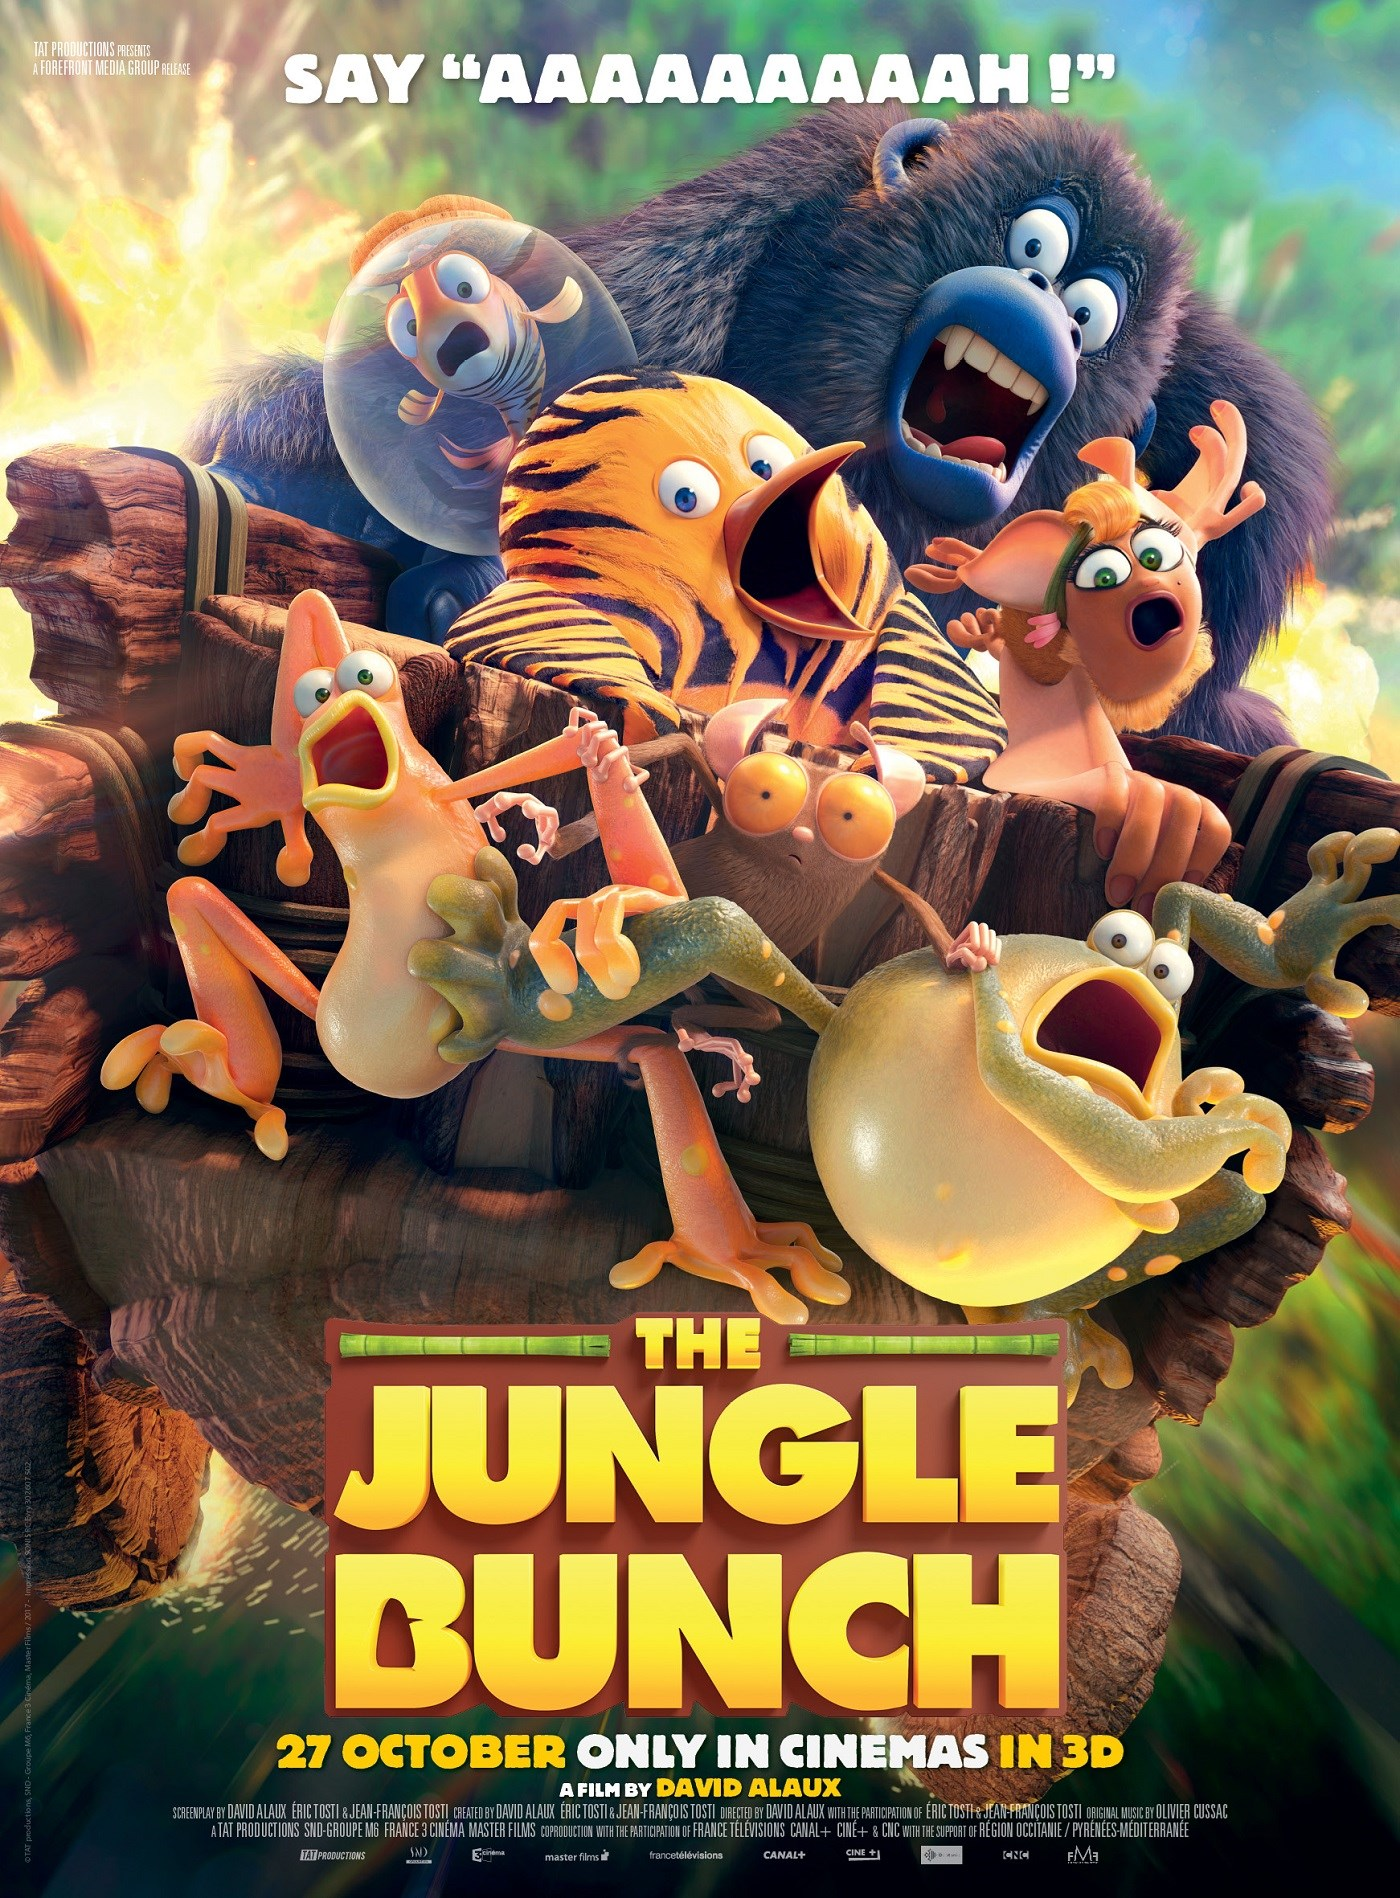 JUNGLE BUNCH Poster